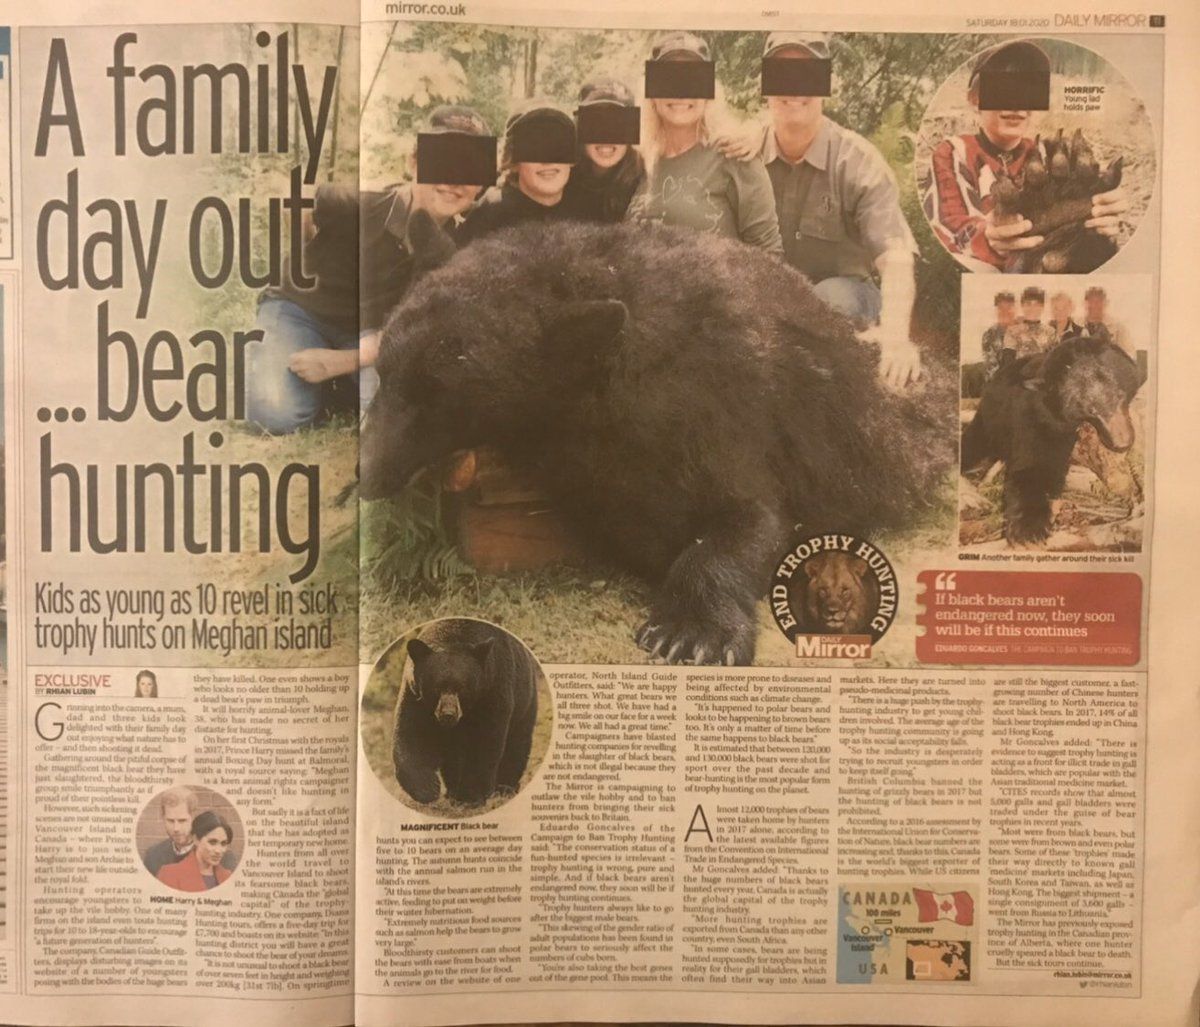 The family that likes killing bears... for FUN :( It's time to #BanTrophyHunting Please sign/share this petition to U.K. govt: change.org/p/boris-johnso…